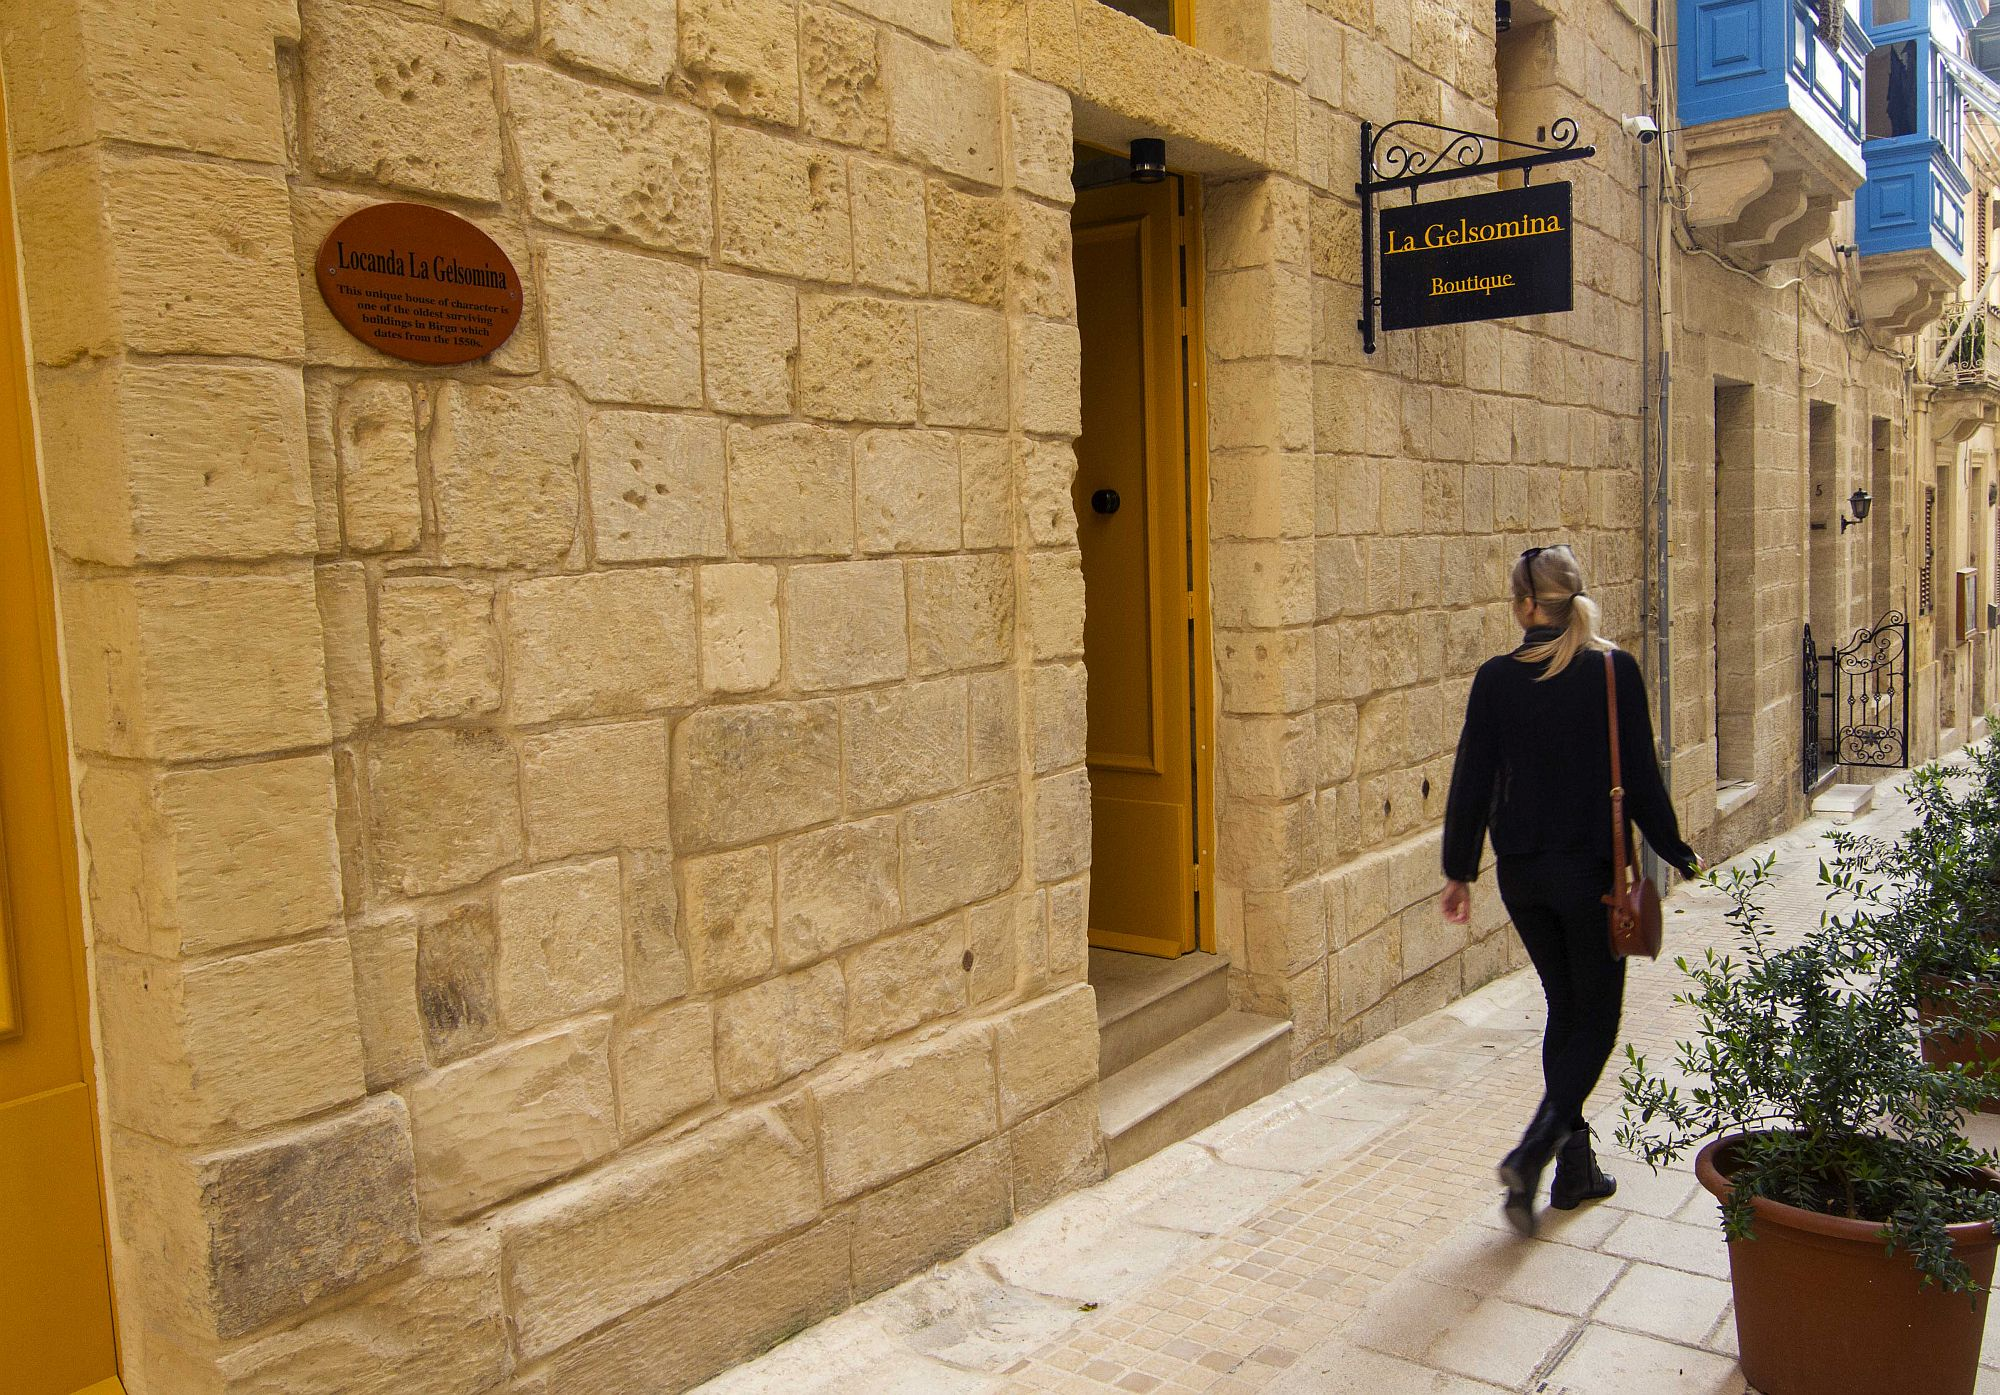 Entrance of the luxurious boutique hotel Locanda La Gelsomina in Birgu